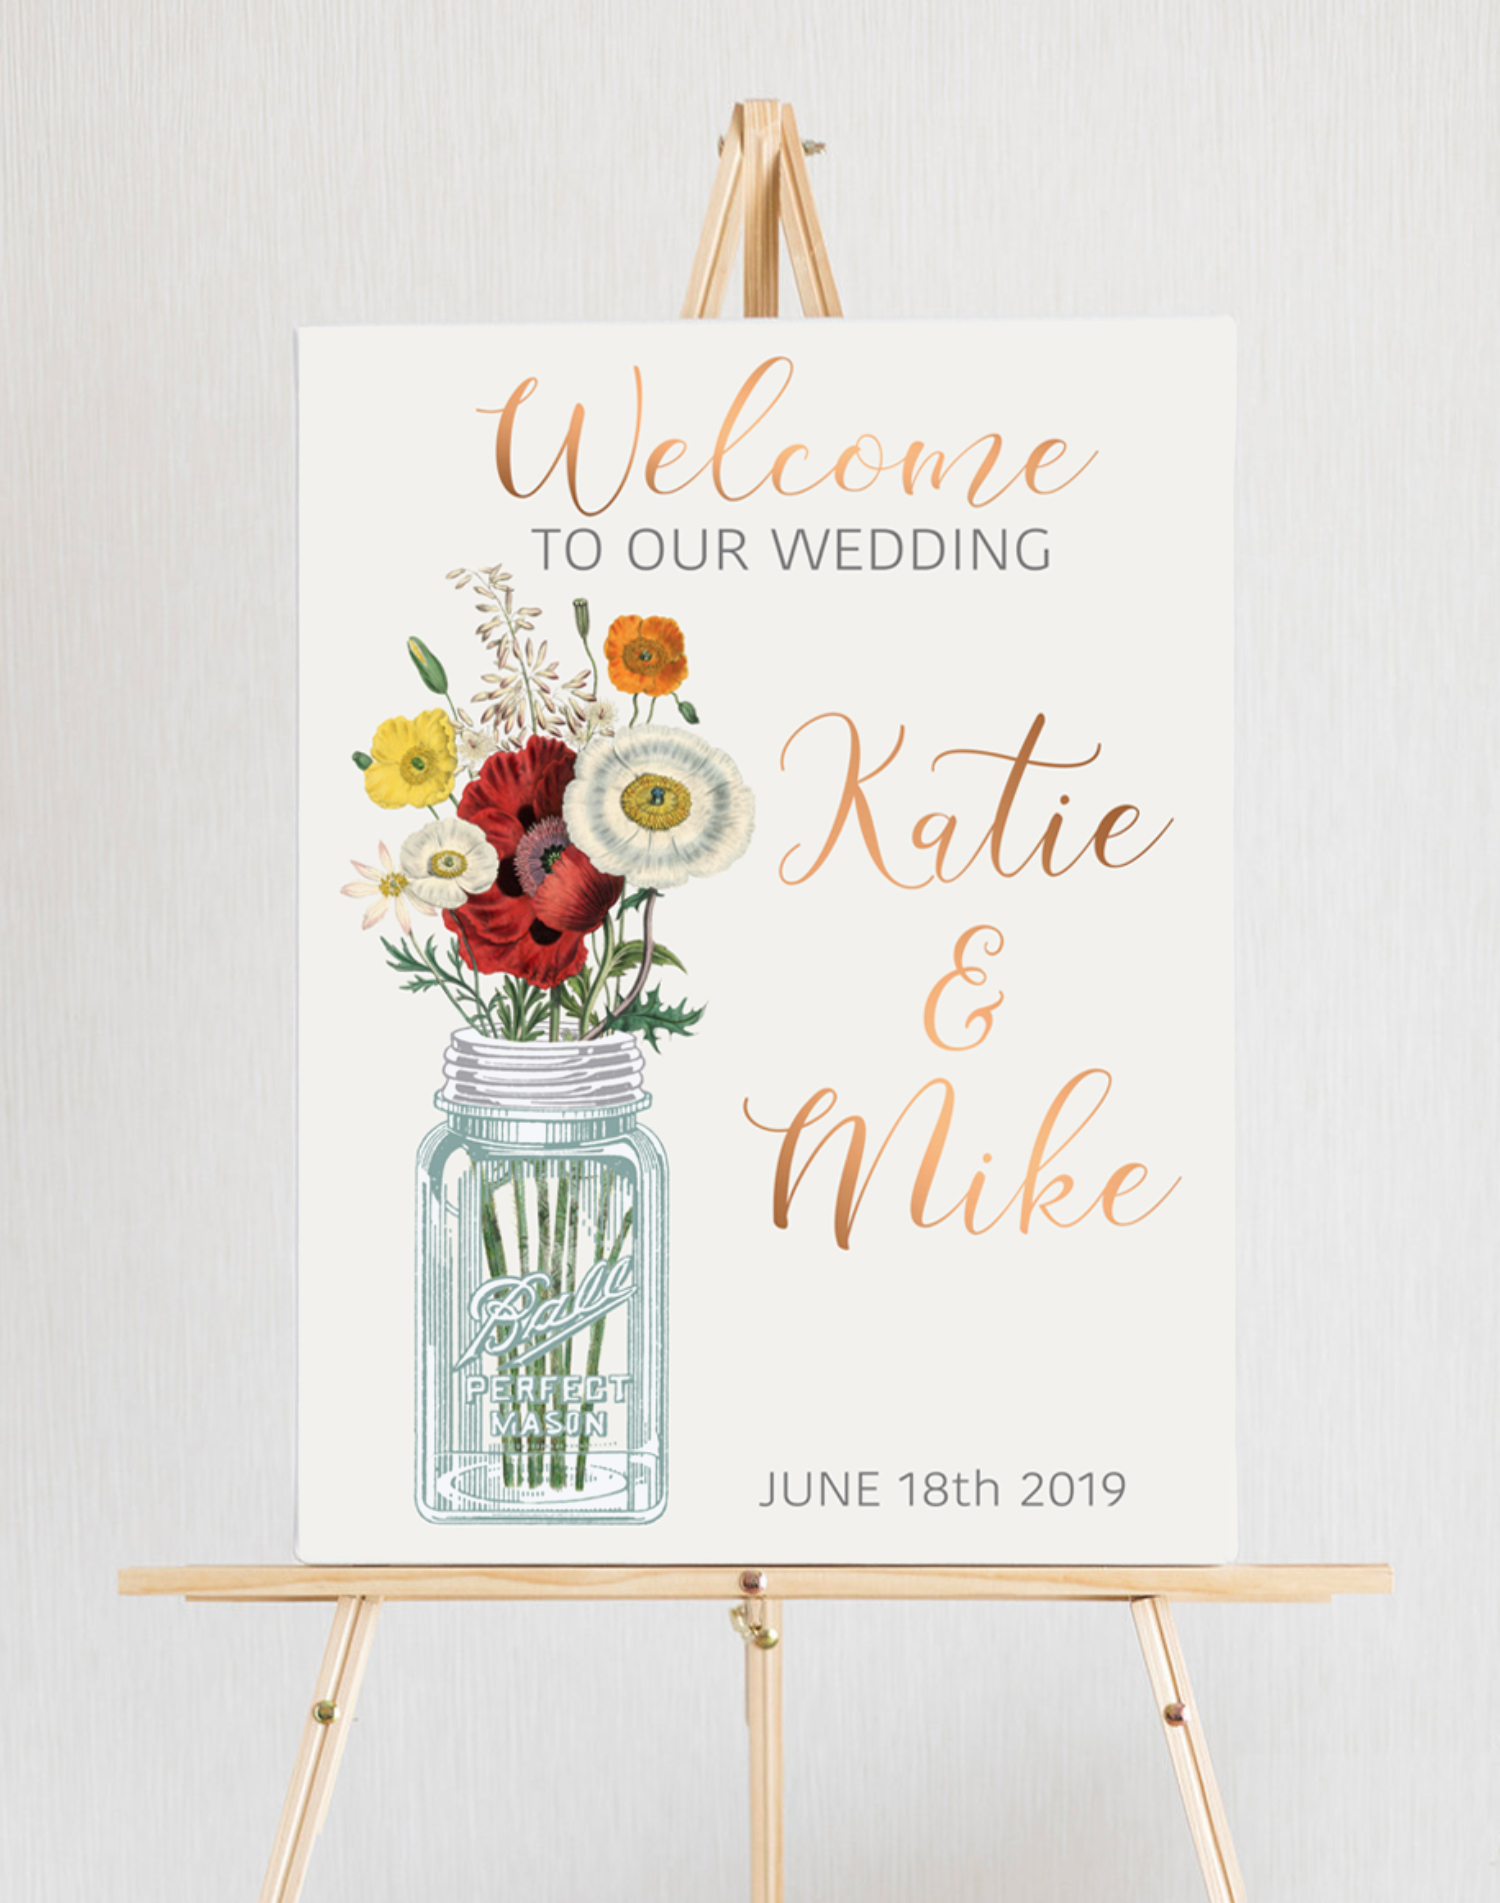 Mason Jar Wedding Easel.jpg